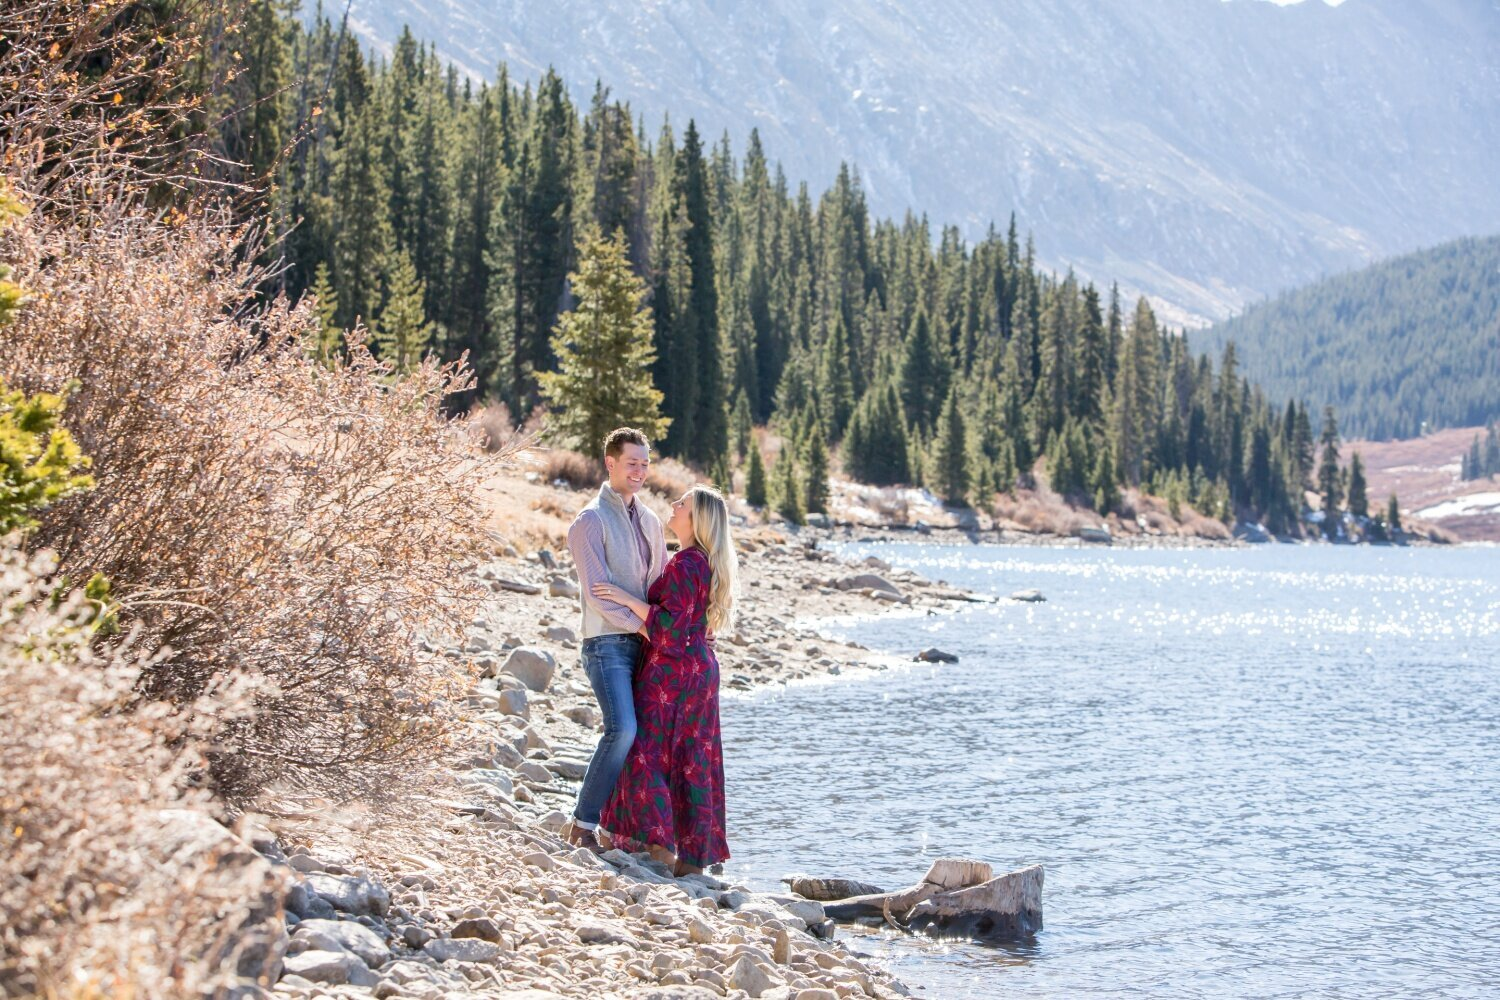 Engagement photos just outside of Breckenridge at Clinton Gulch Dam Reservoir